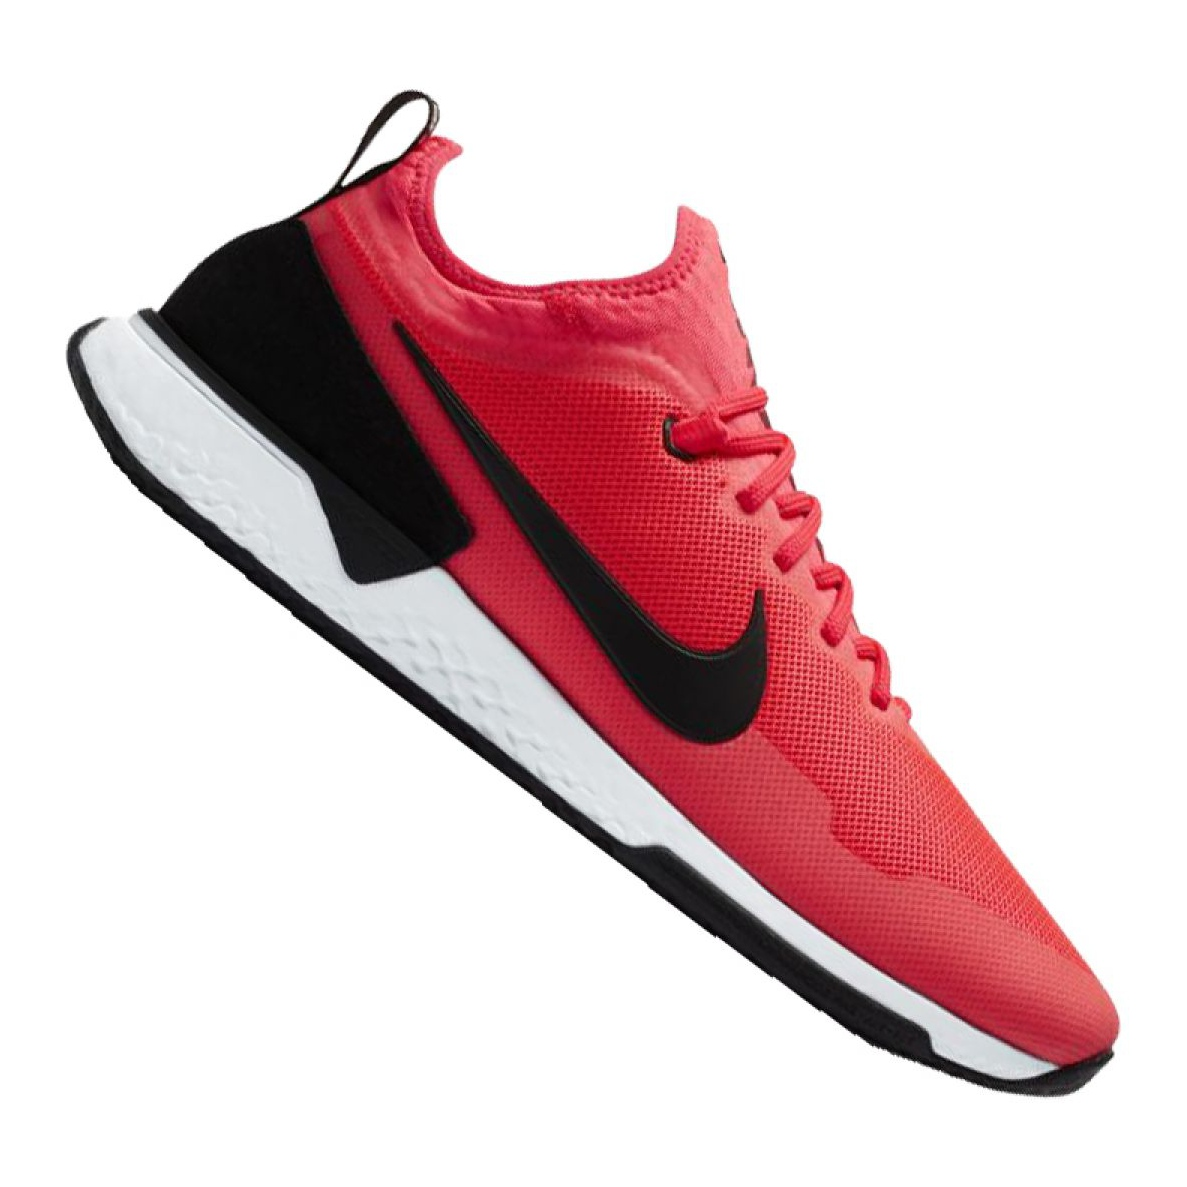 1d7443159 Rouge Nike FC M AQ3619-601 chaussures